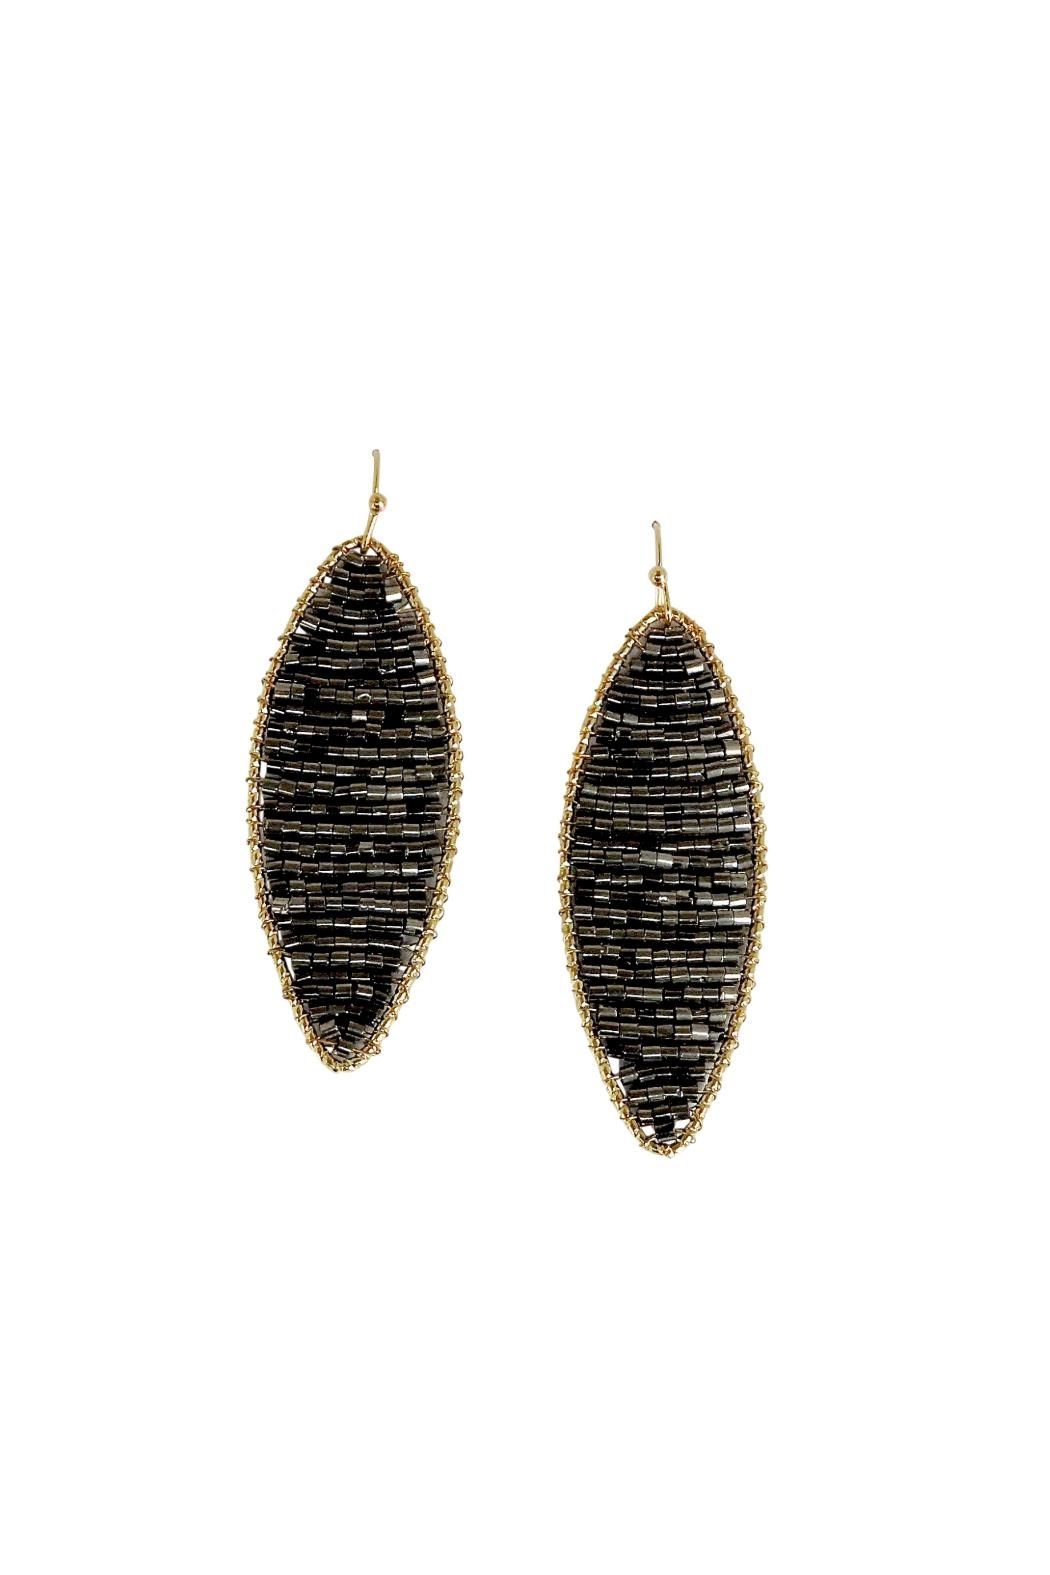 disc amrita shop earrings gunmetal product erc singh jewelry